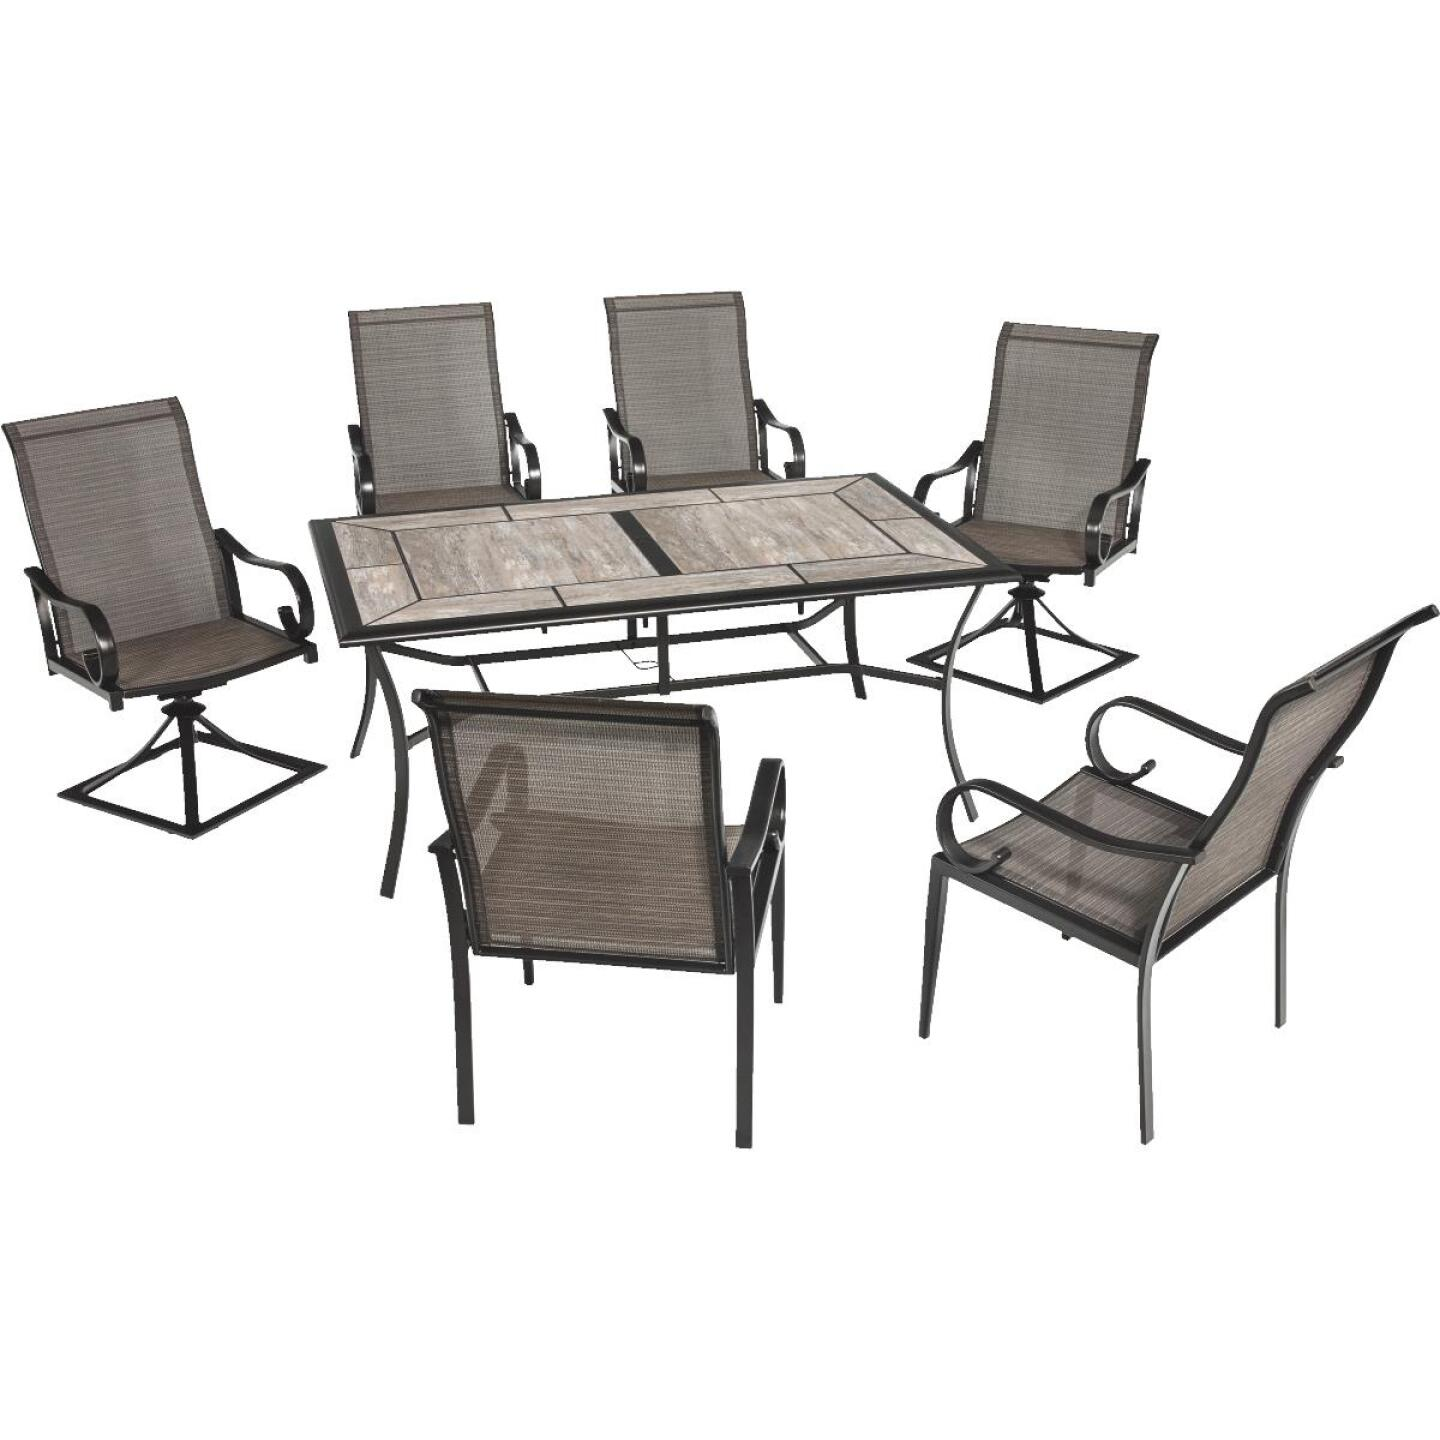 Outdoor Expressions Berkshire 7-Piece Dining Set Image 270